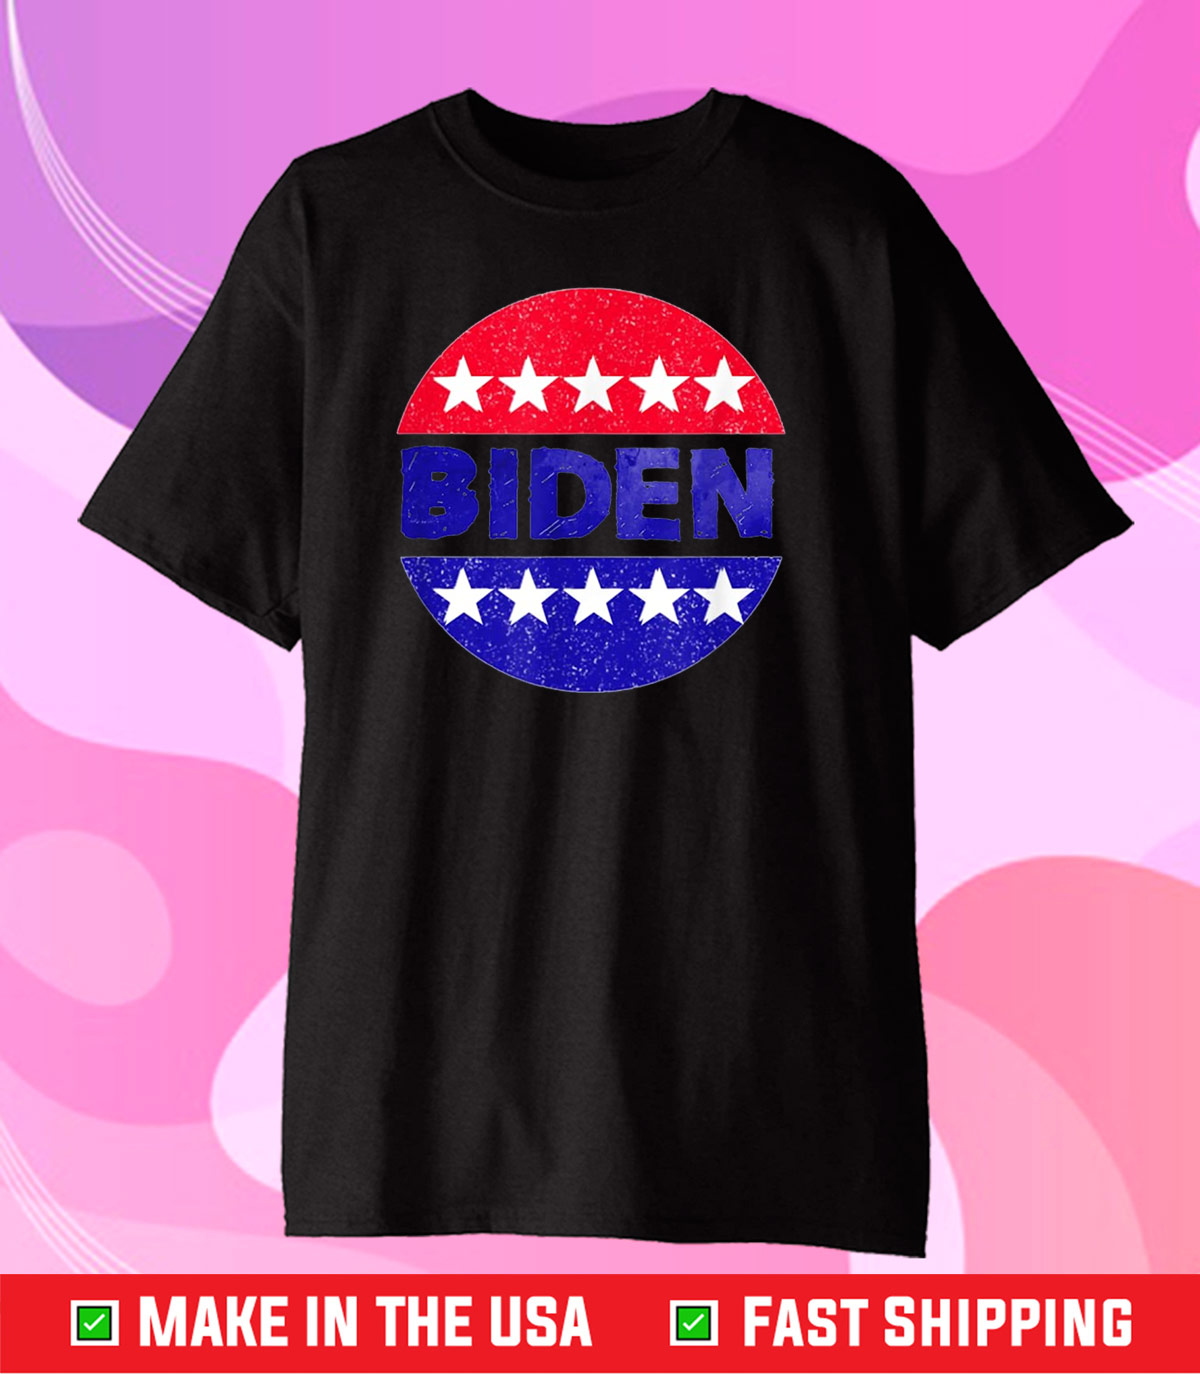 Biden in a Red White and Blue Circle with Stars Design Gift T-Shirt